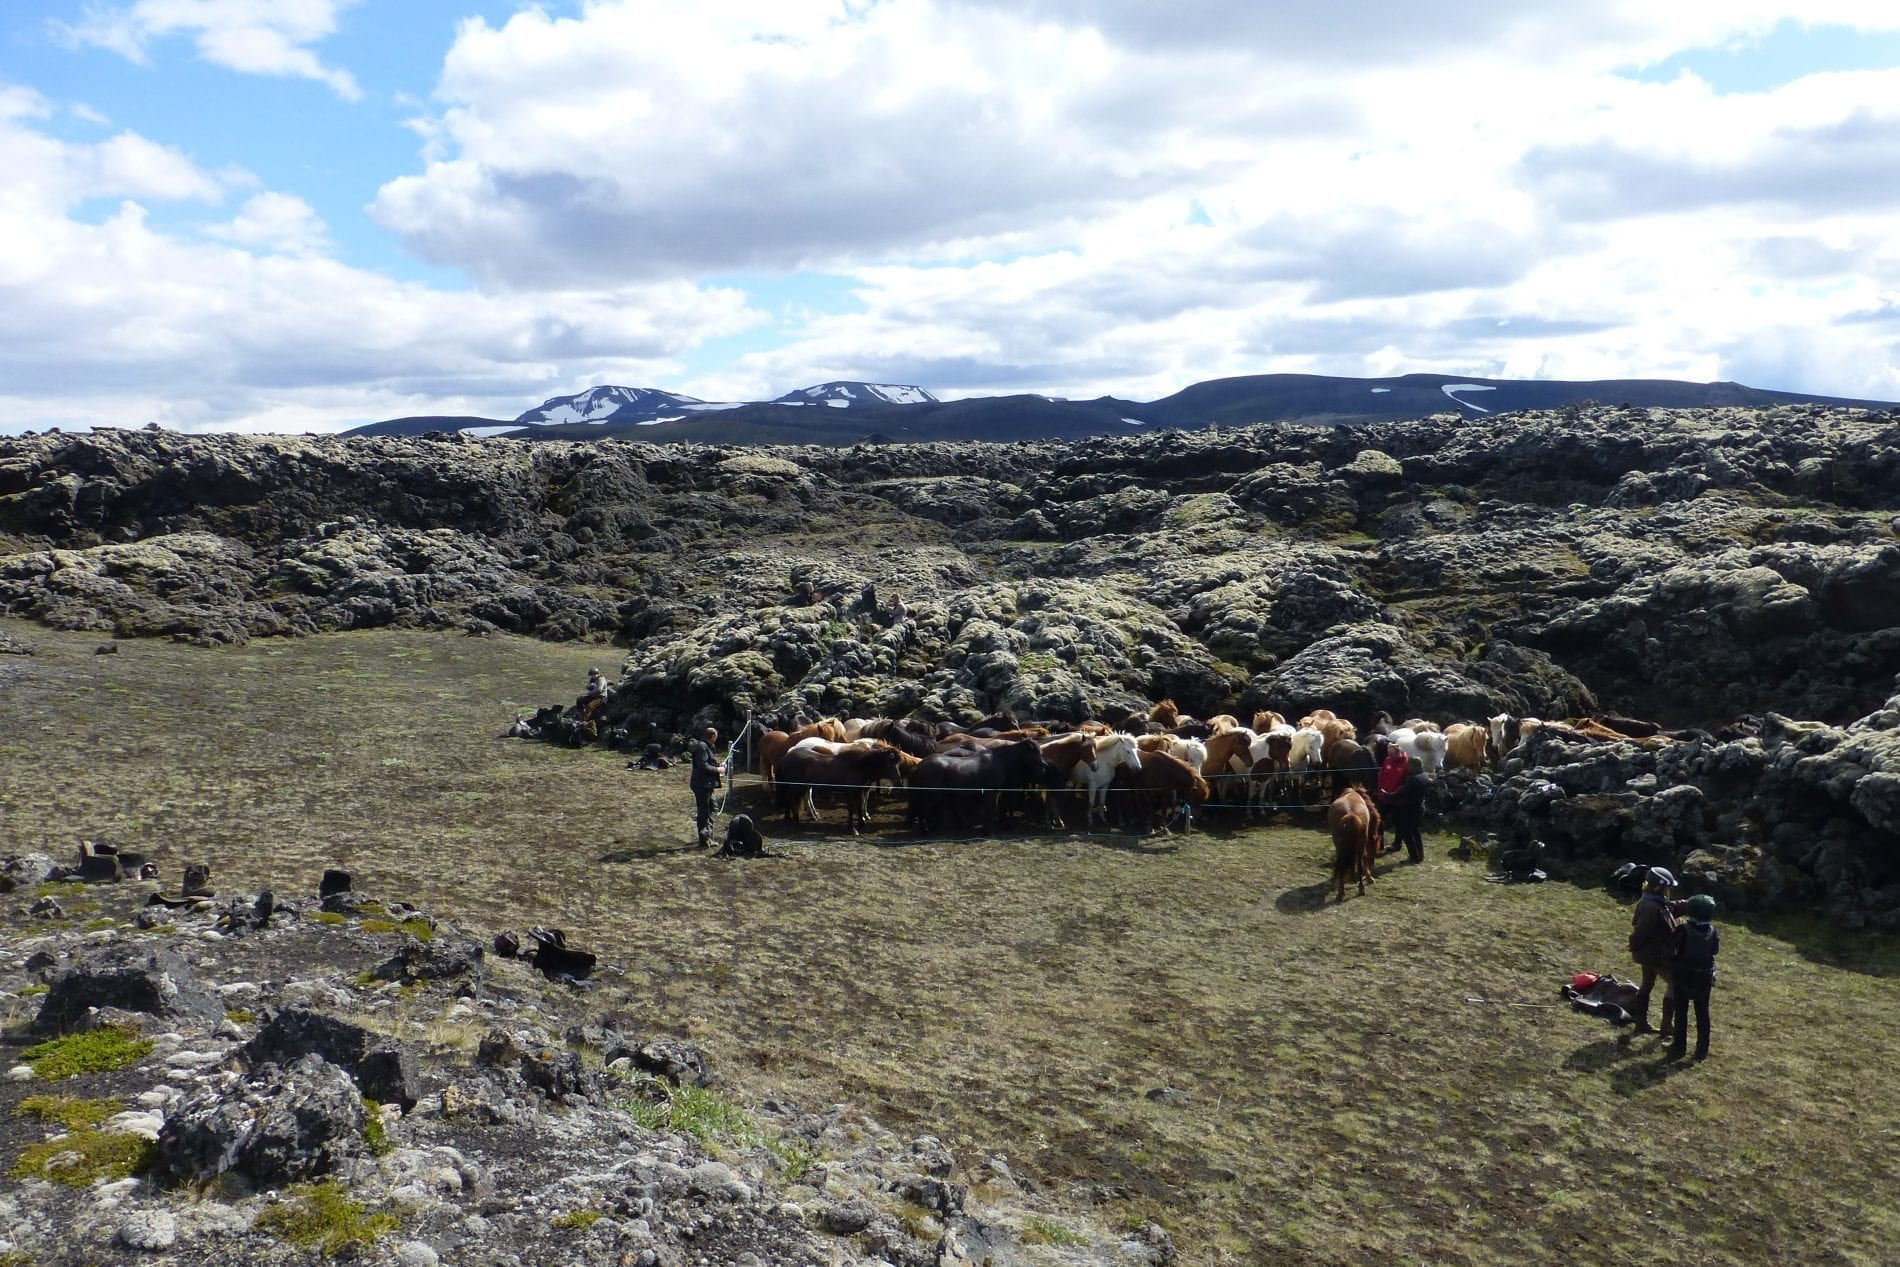 Horses fenced up next to a mossy lava field